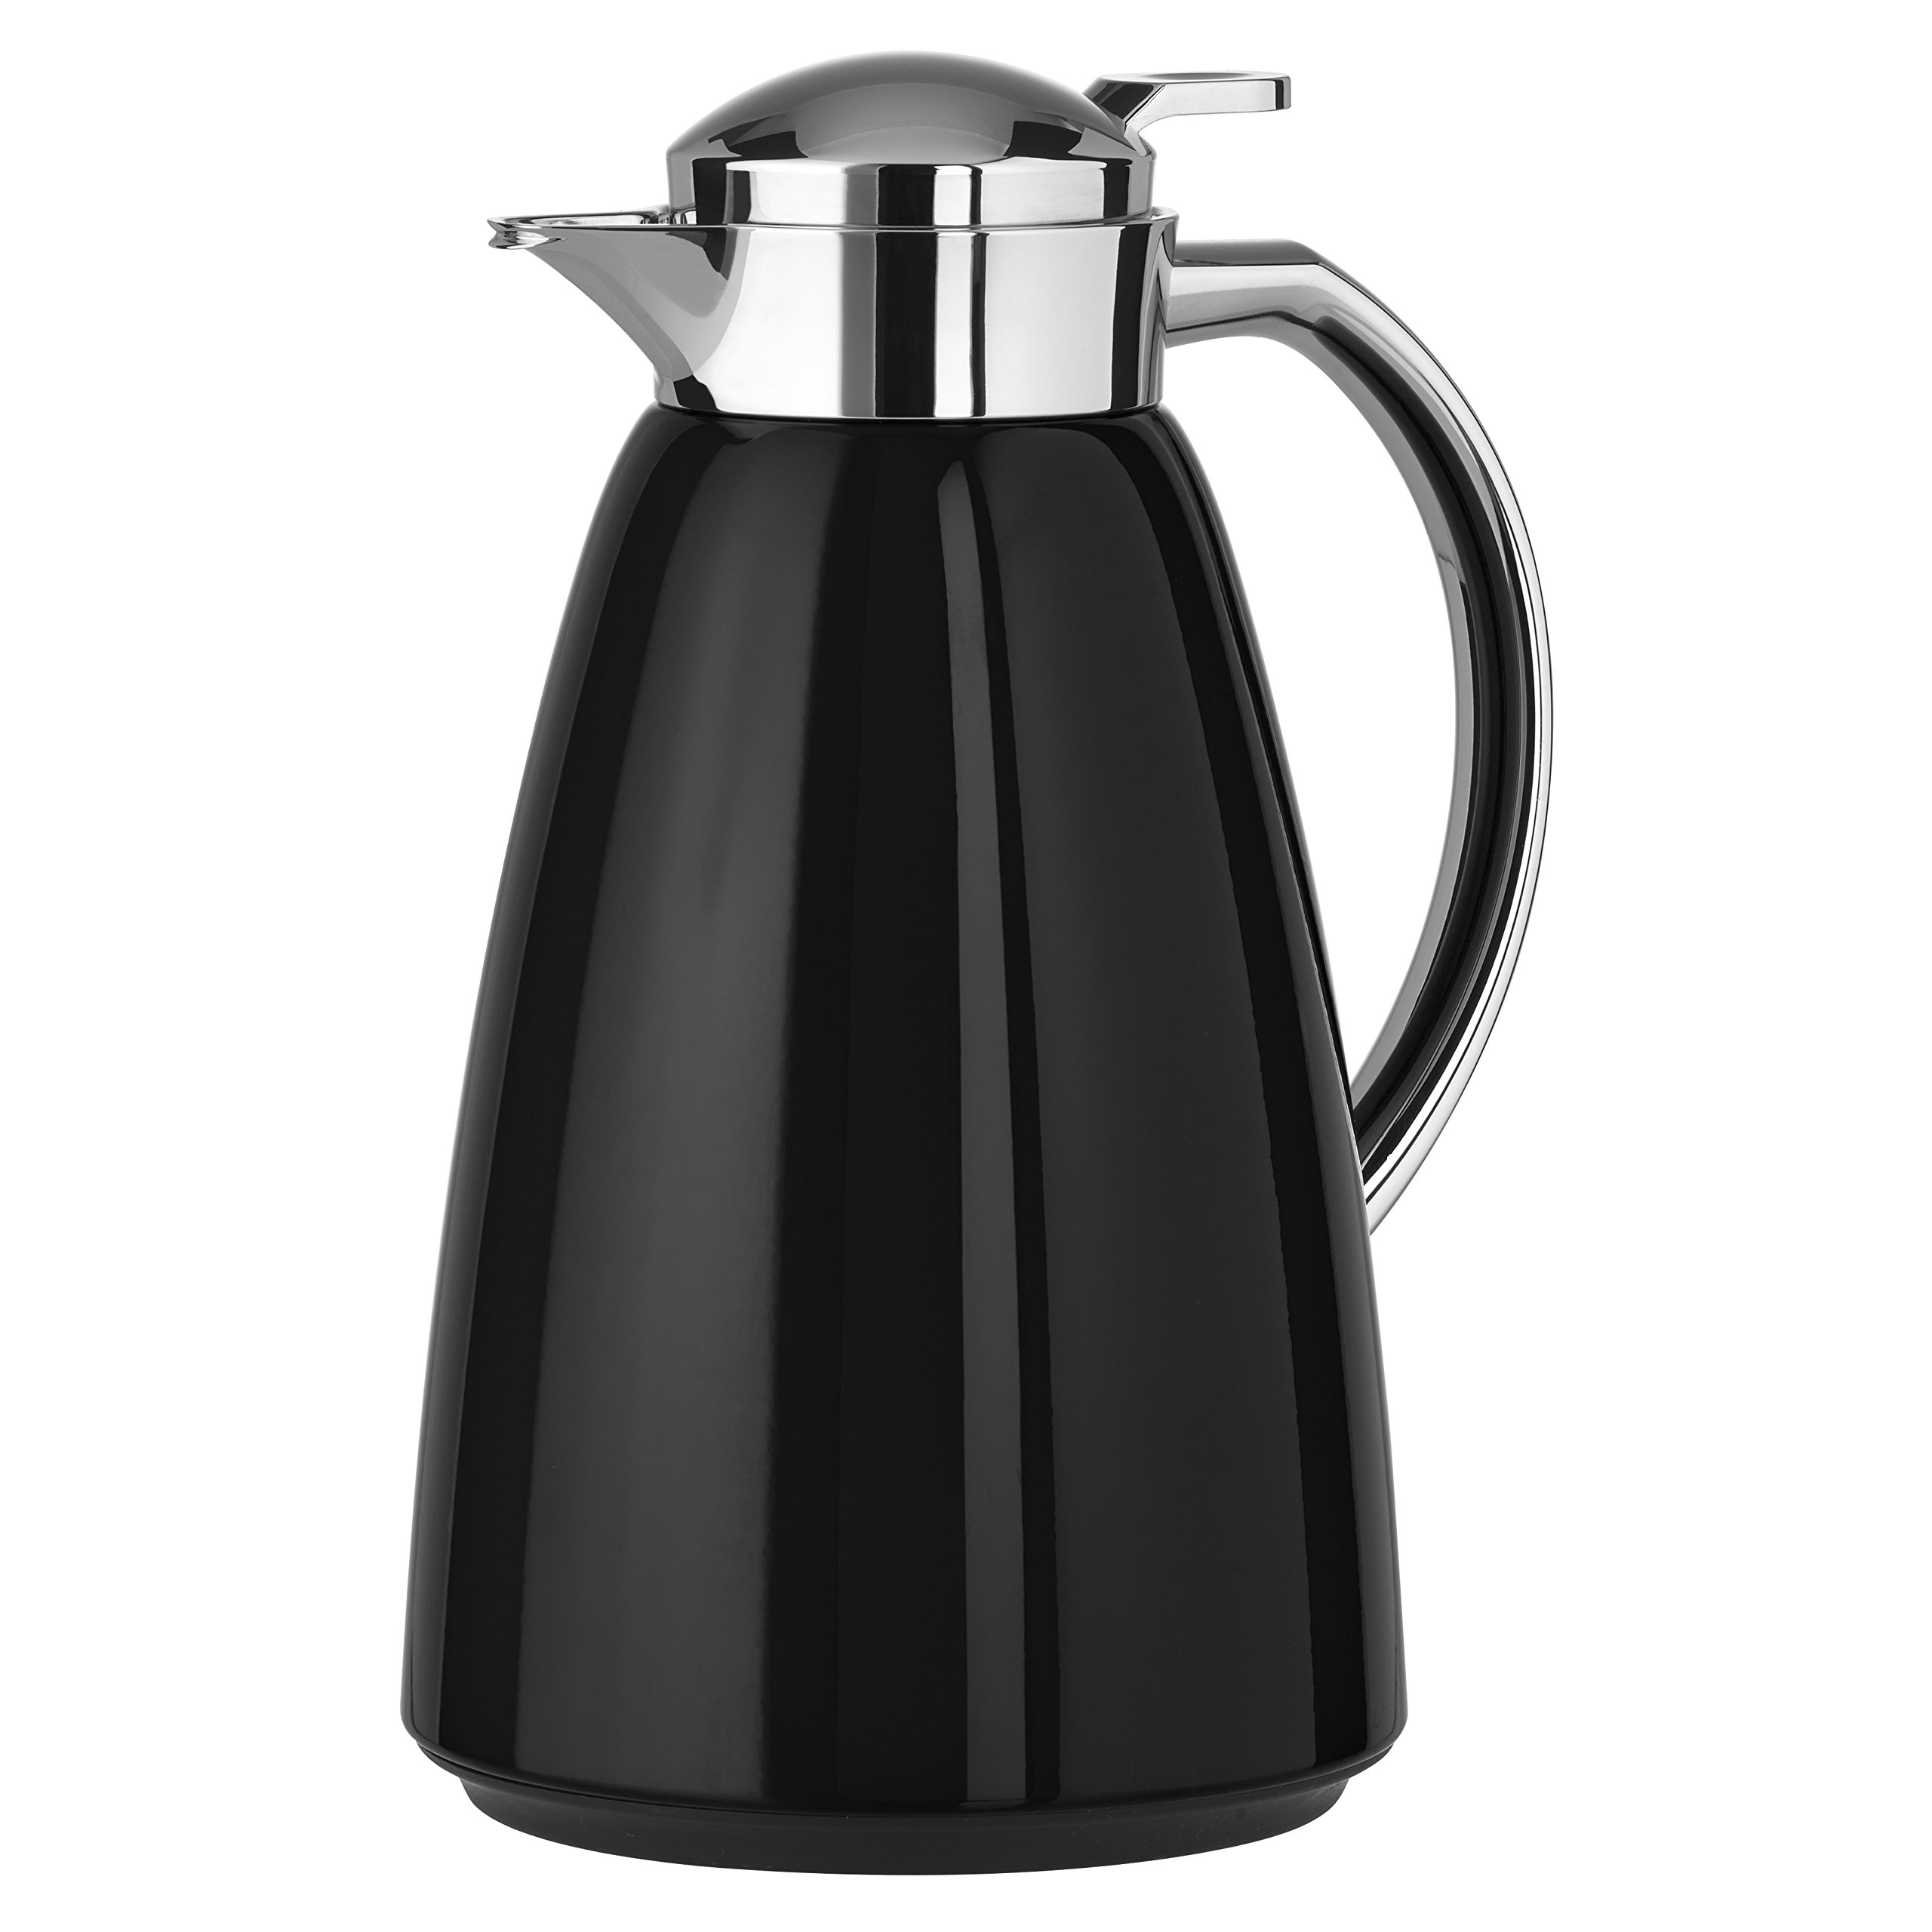 Emsa Campo Stainless Steel Thermal Carafe with Glass Liner, 34 oz, Black by Emsa